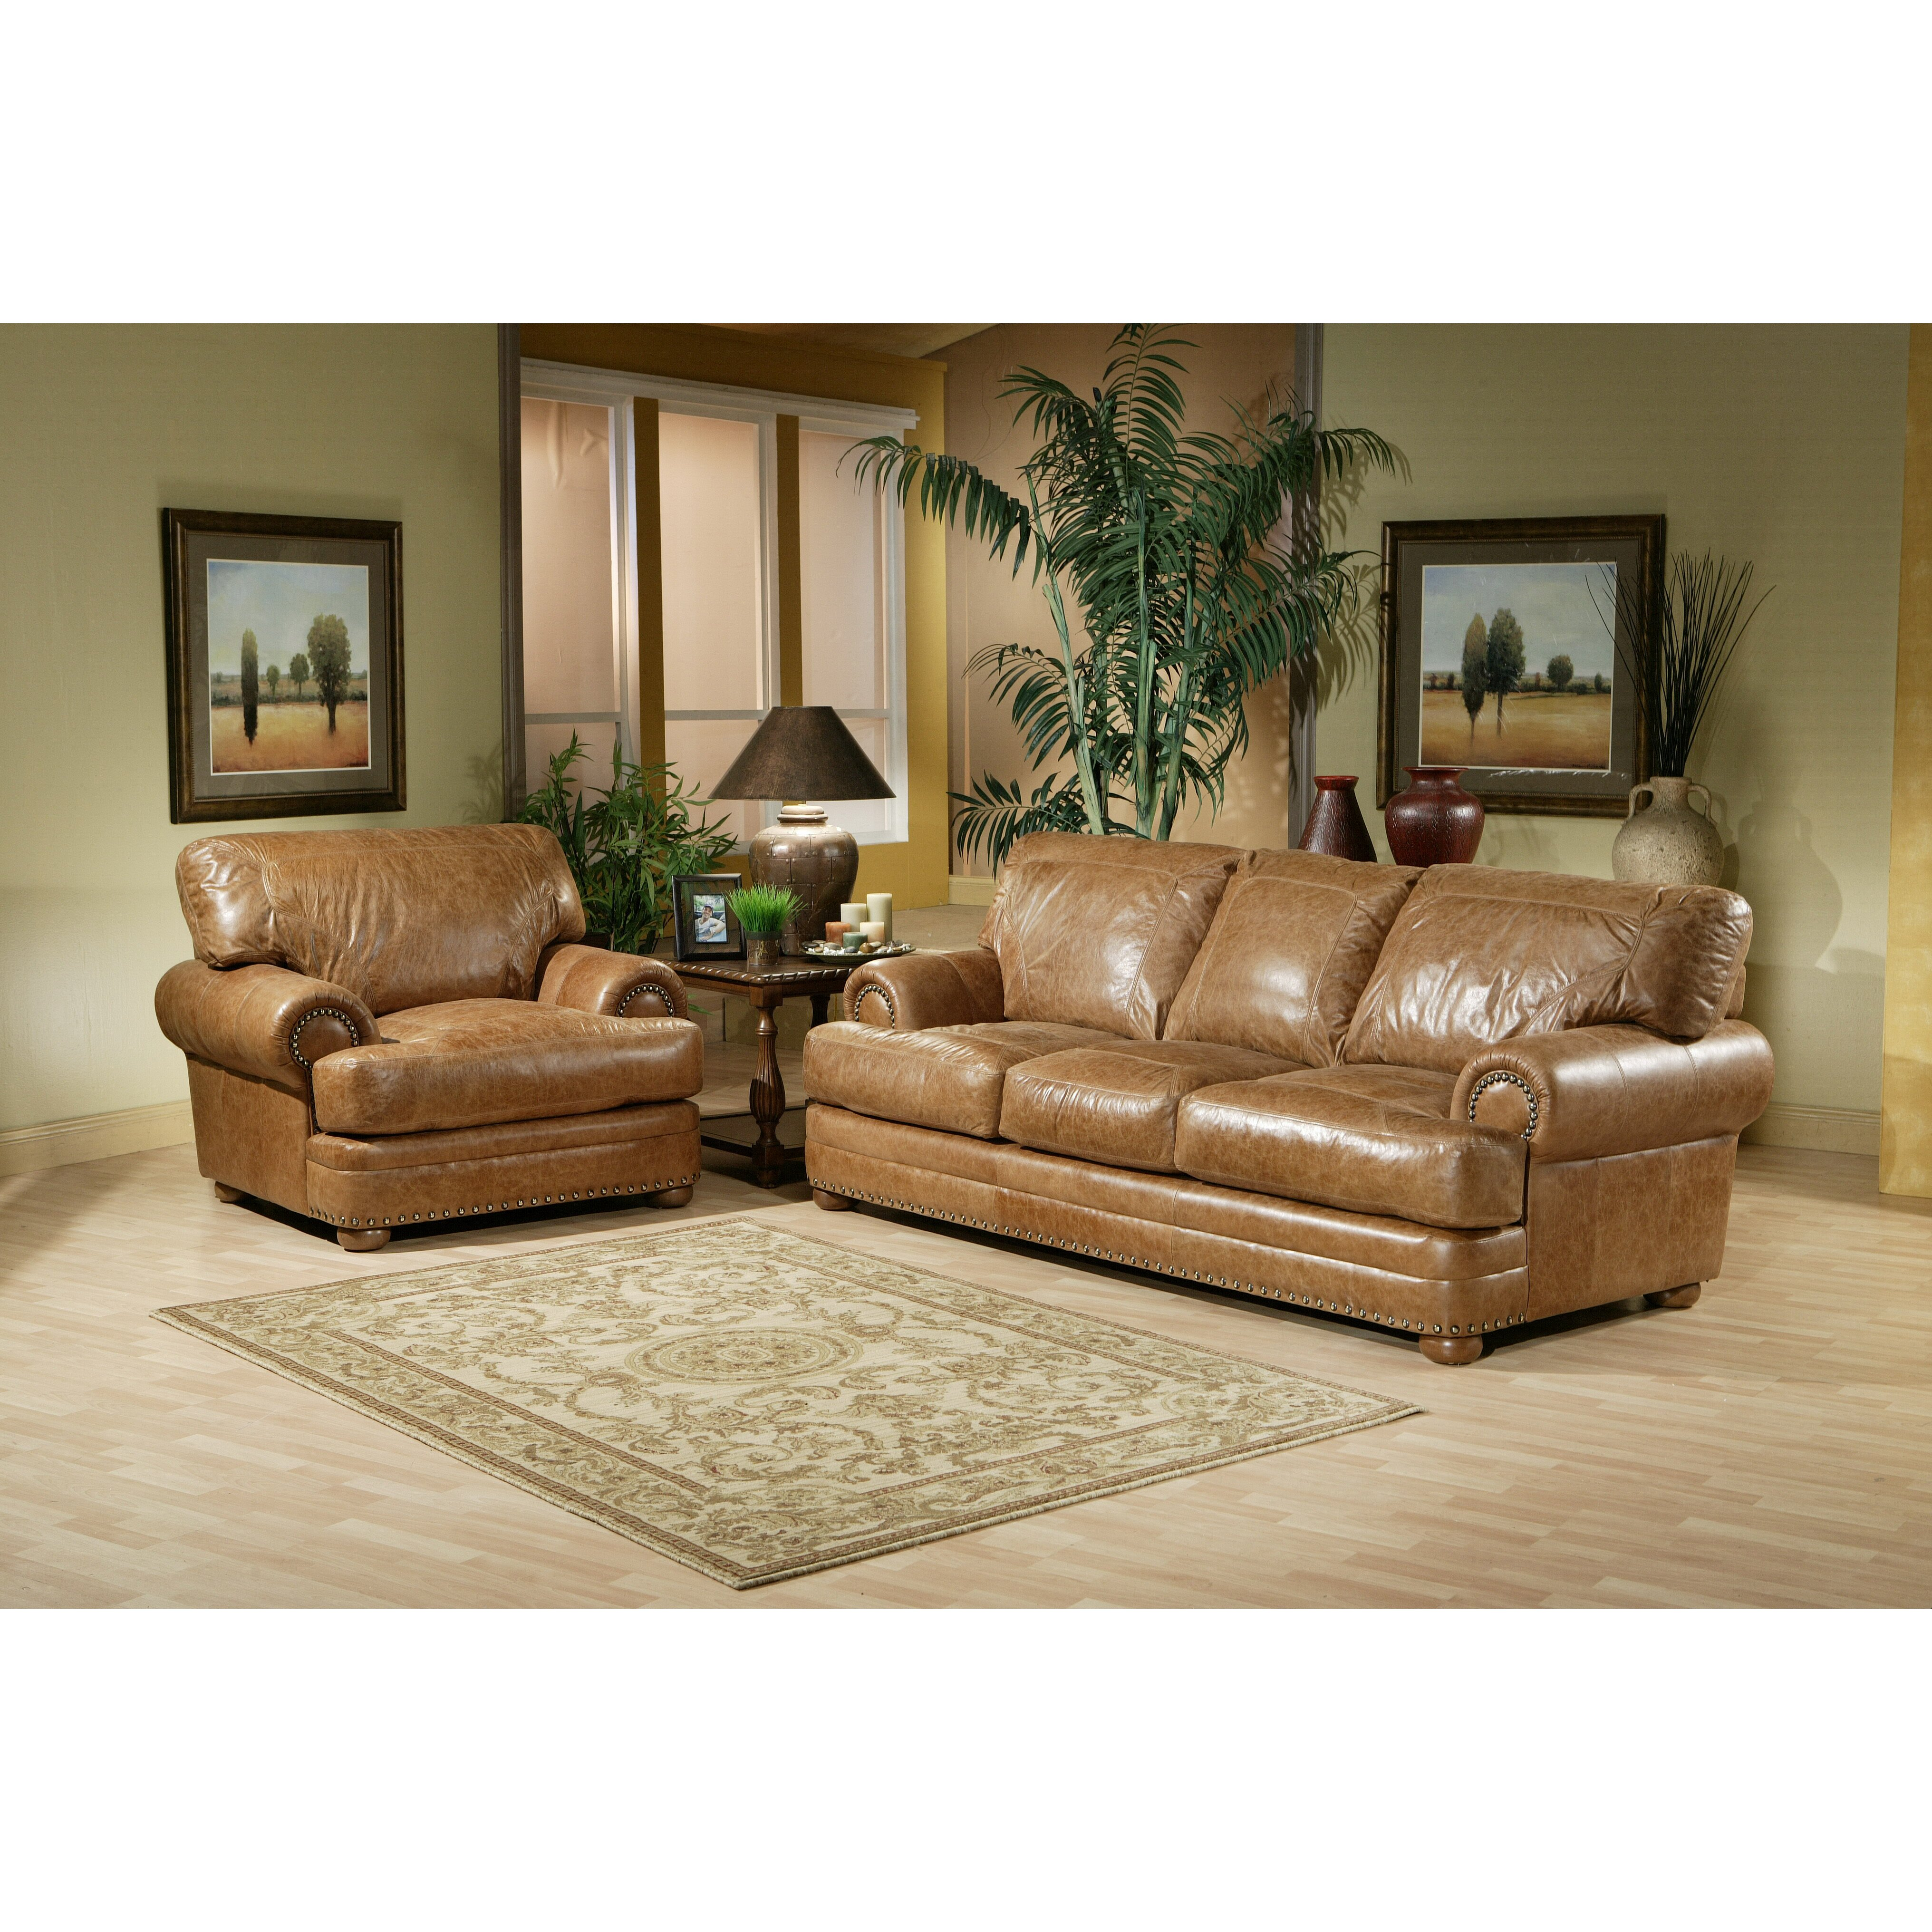 Sectional Couch Houston Tx: Houston Leather Sofa